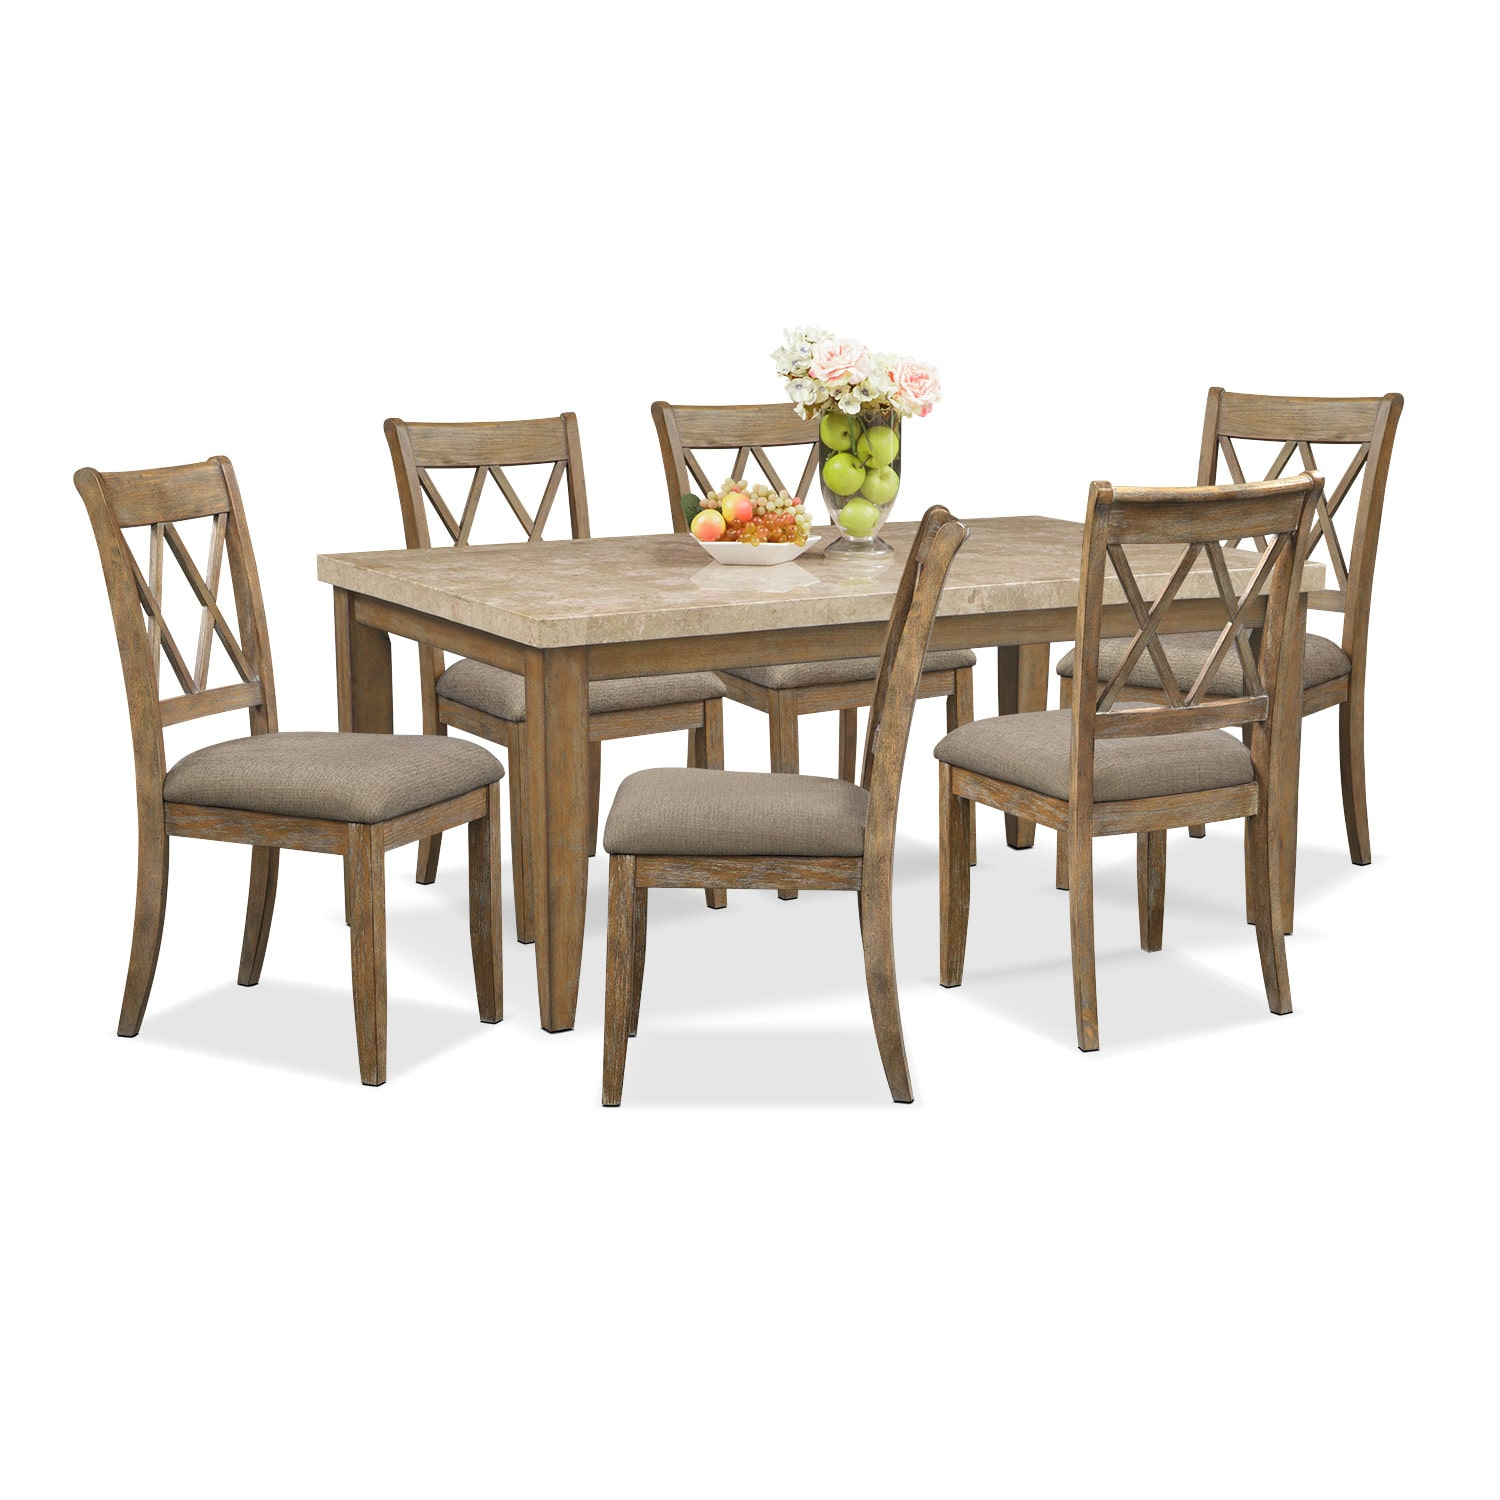 Dining Room Furniture - Sedona Gray 7 Pc. Dining Room